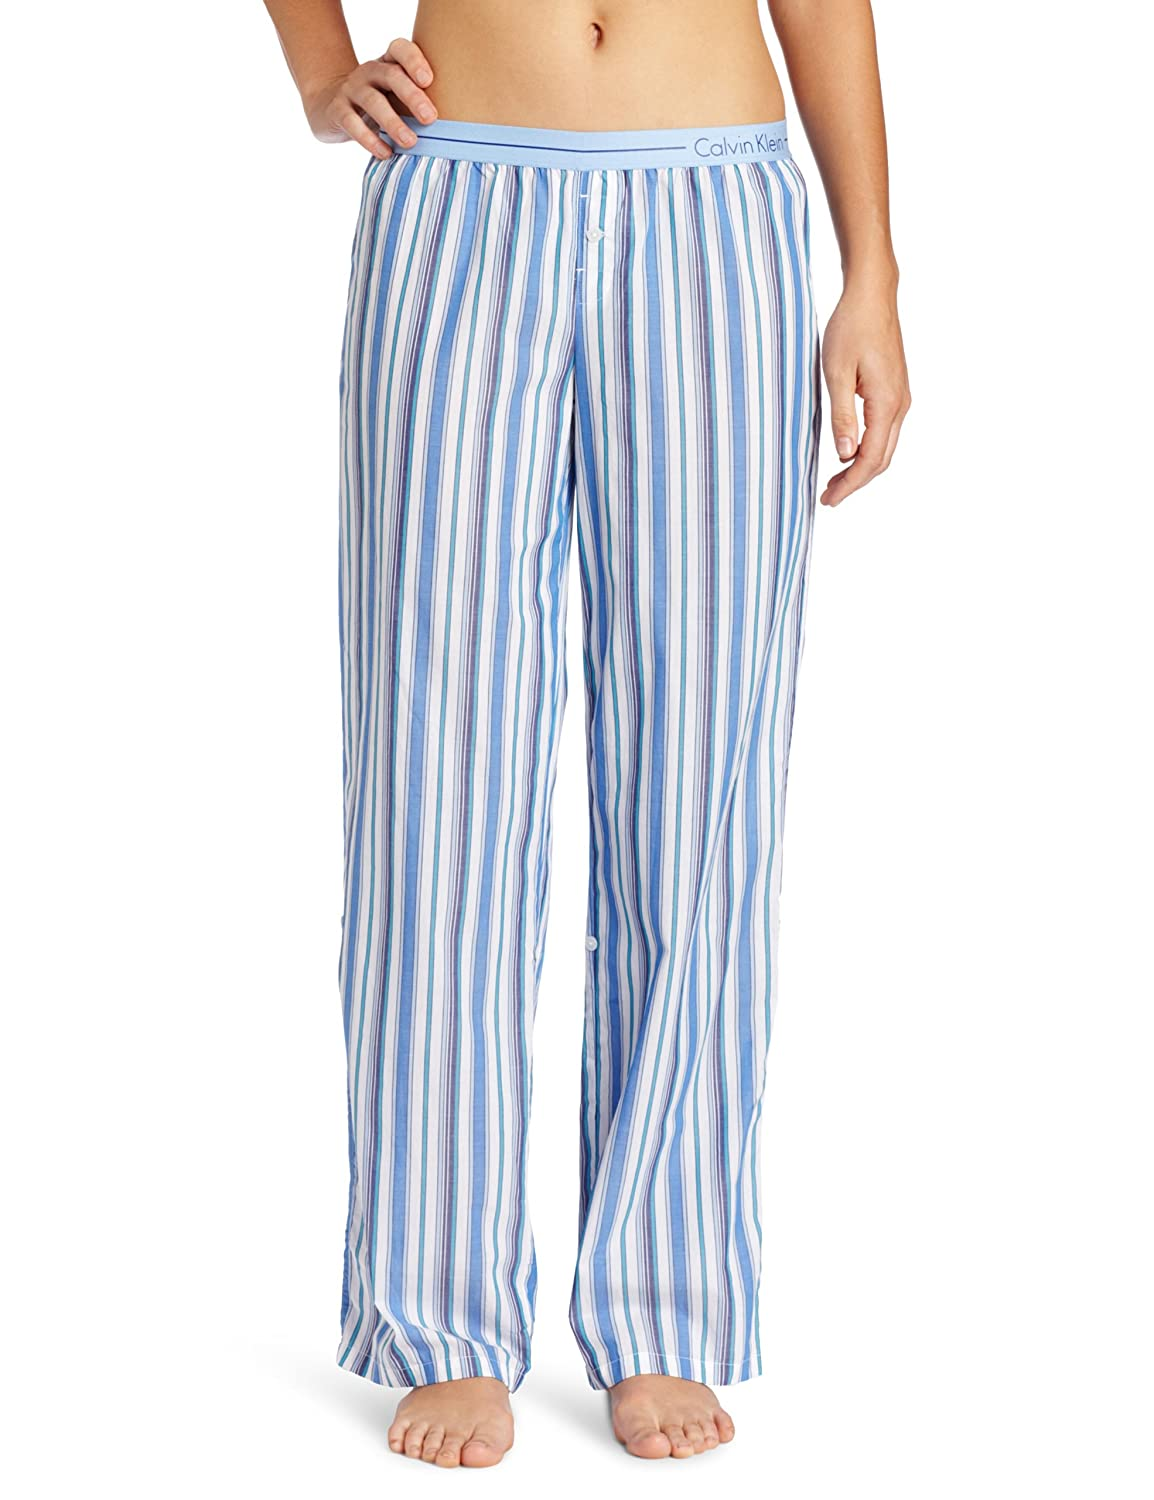 Calvin Klein Womens Roll Up Woven Pajama Bottom at Amazon Womens Clothing store: